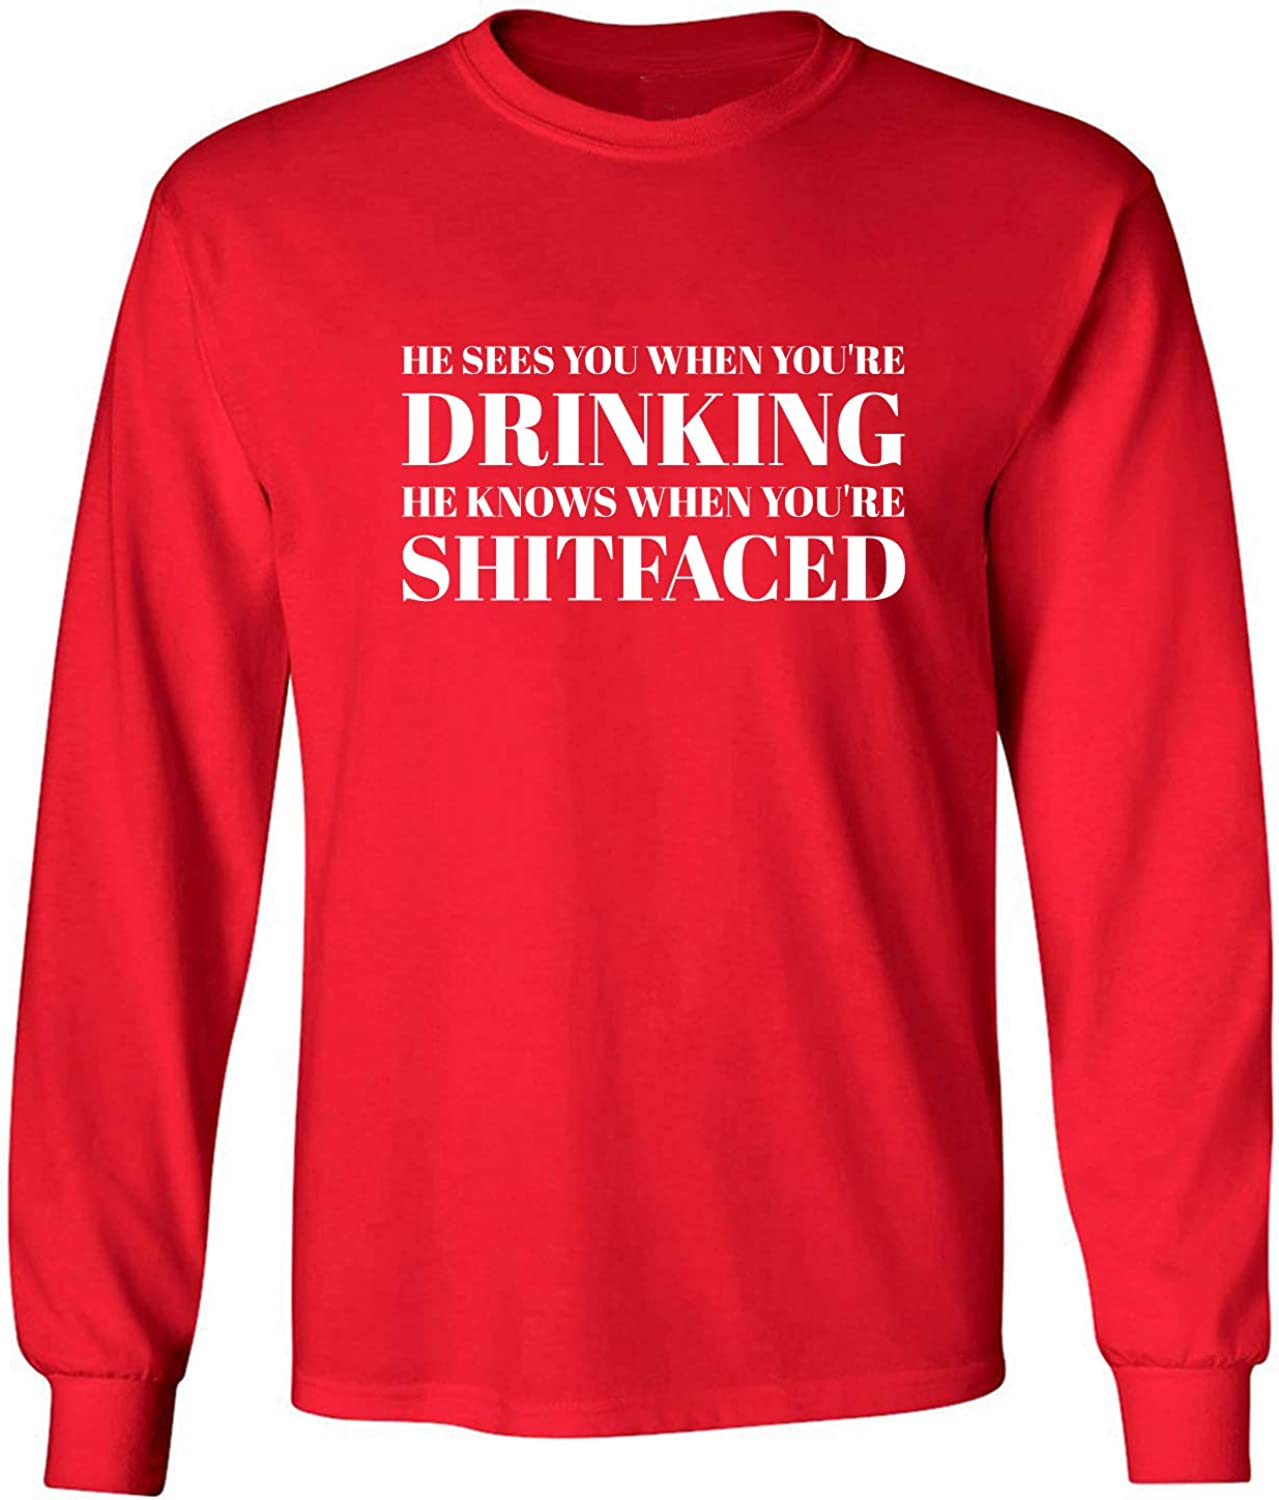 He Sees You When You're Drinking Adult Long Sleeve T-Shirt in Red - XXX-Large